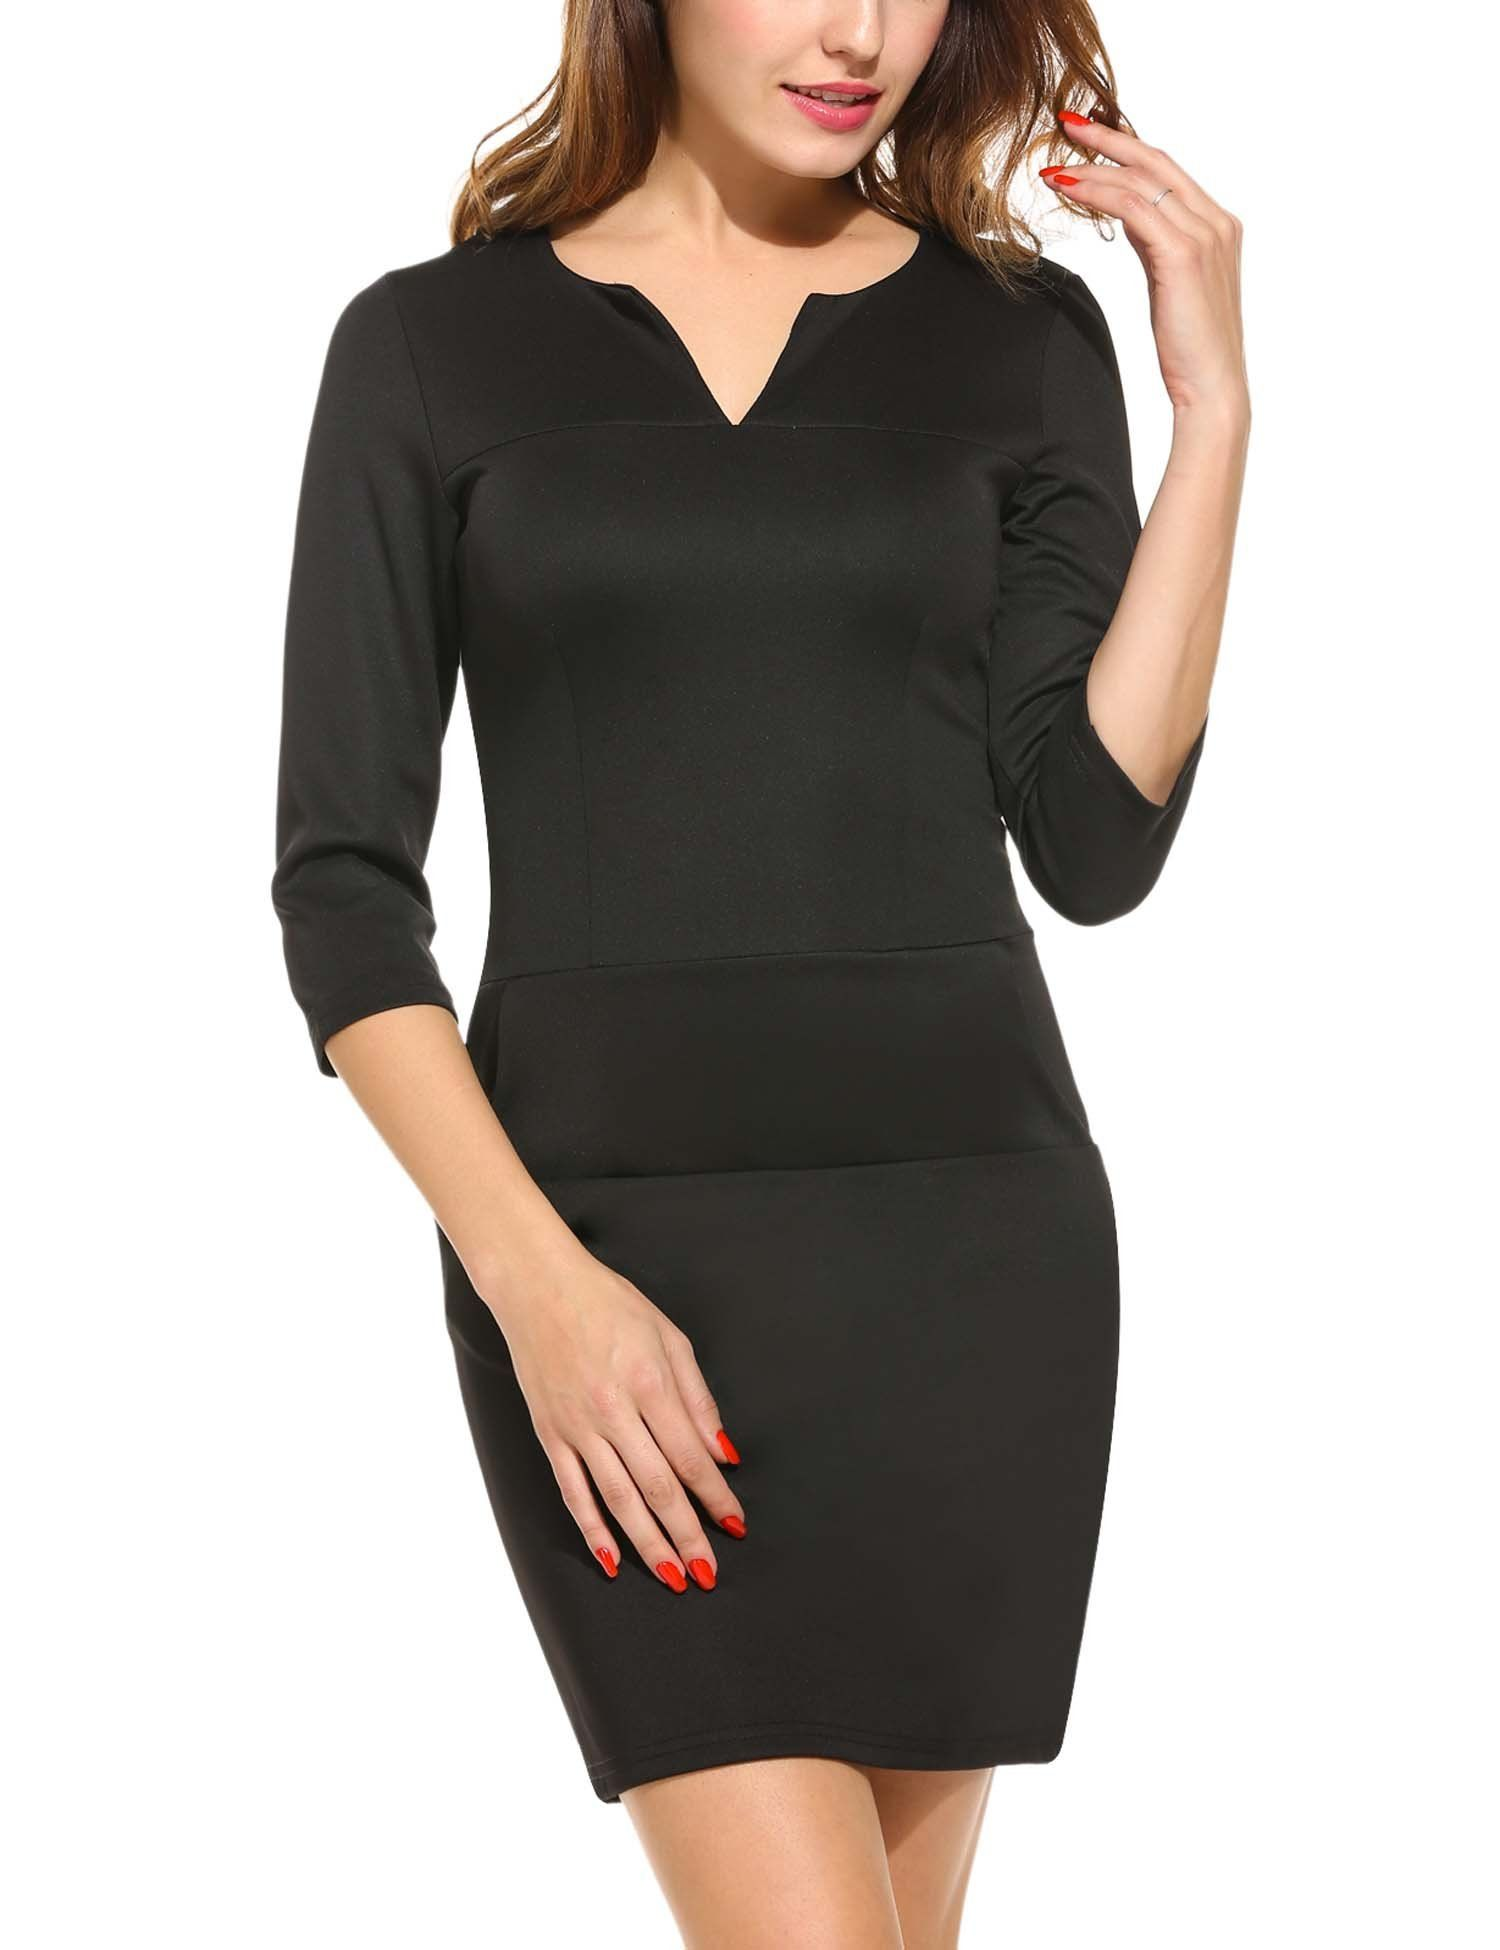 ANGVNS Womens Office Work Business Cocktail Party Bodycon Pencil Dress